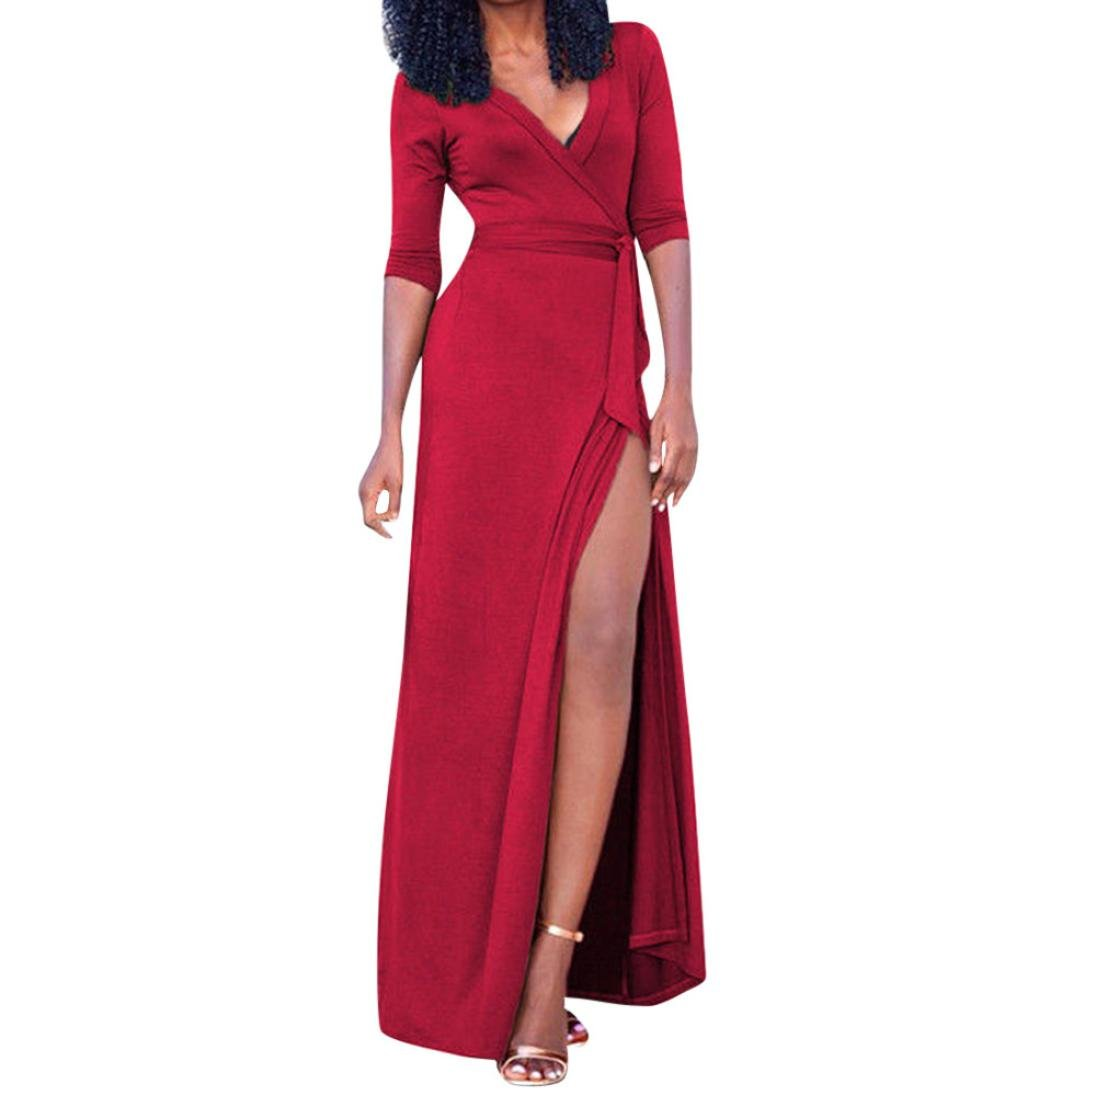 2018 New Deep V-Neck Long Sleeve Belt Bandages High Split Maxi Long Dress,Sexy and Elegant Party Dress (XXL, Red)